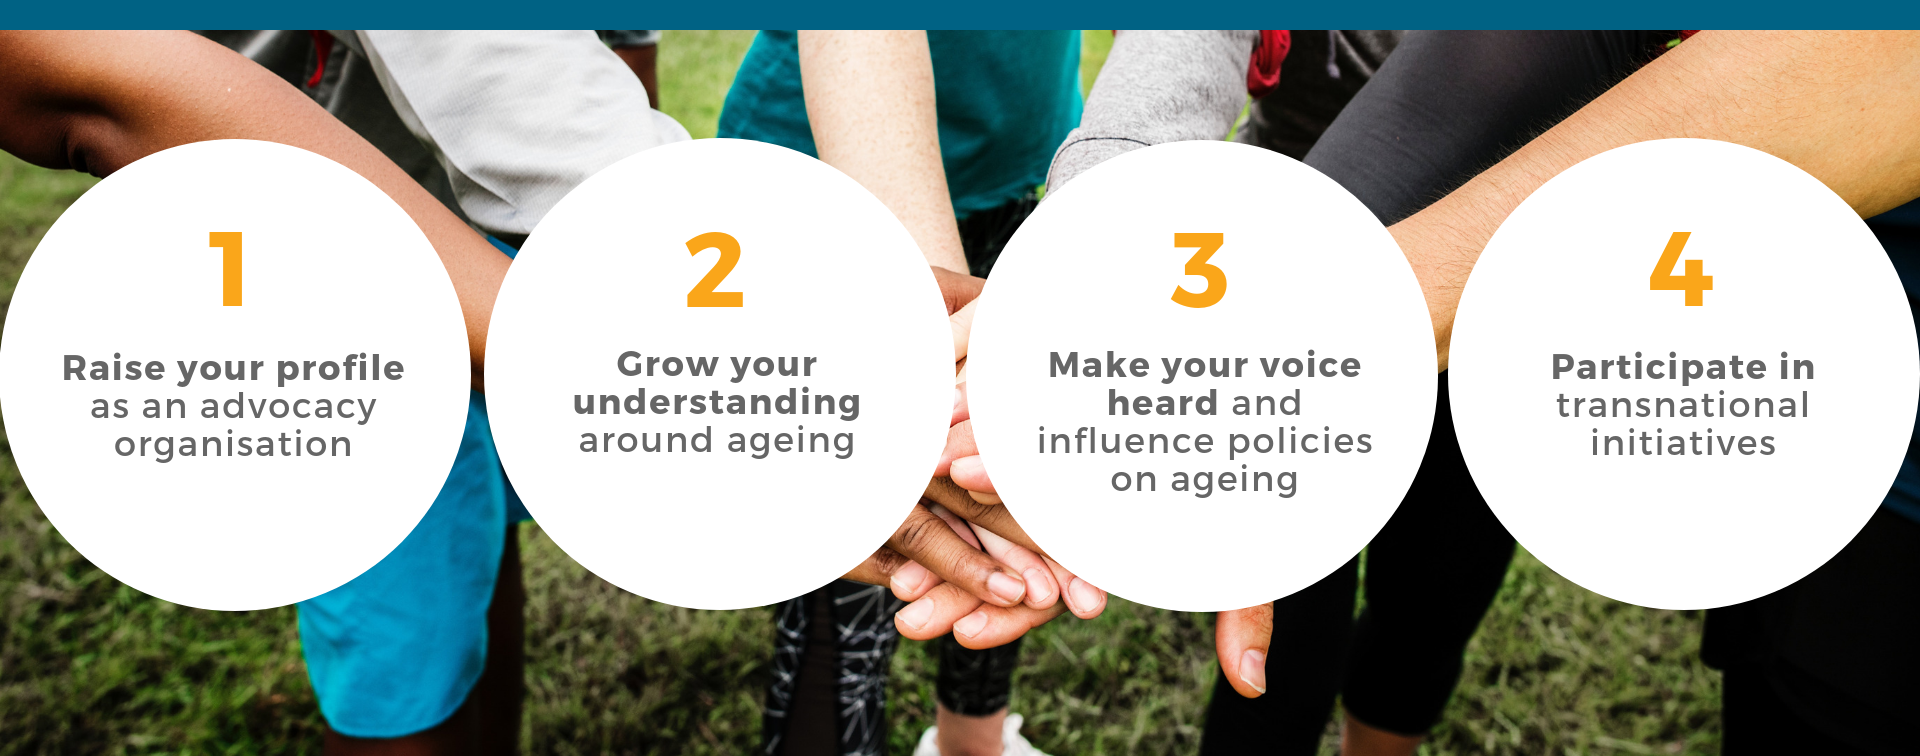 Four advantages of being a member of AGE